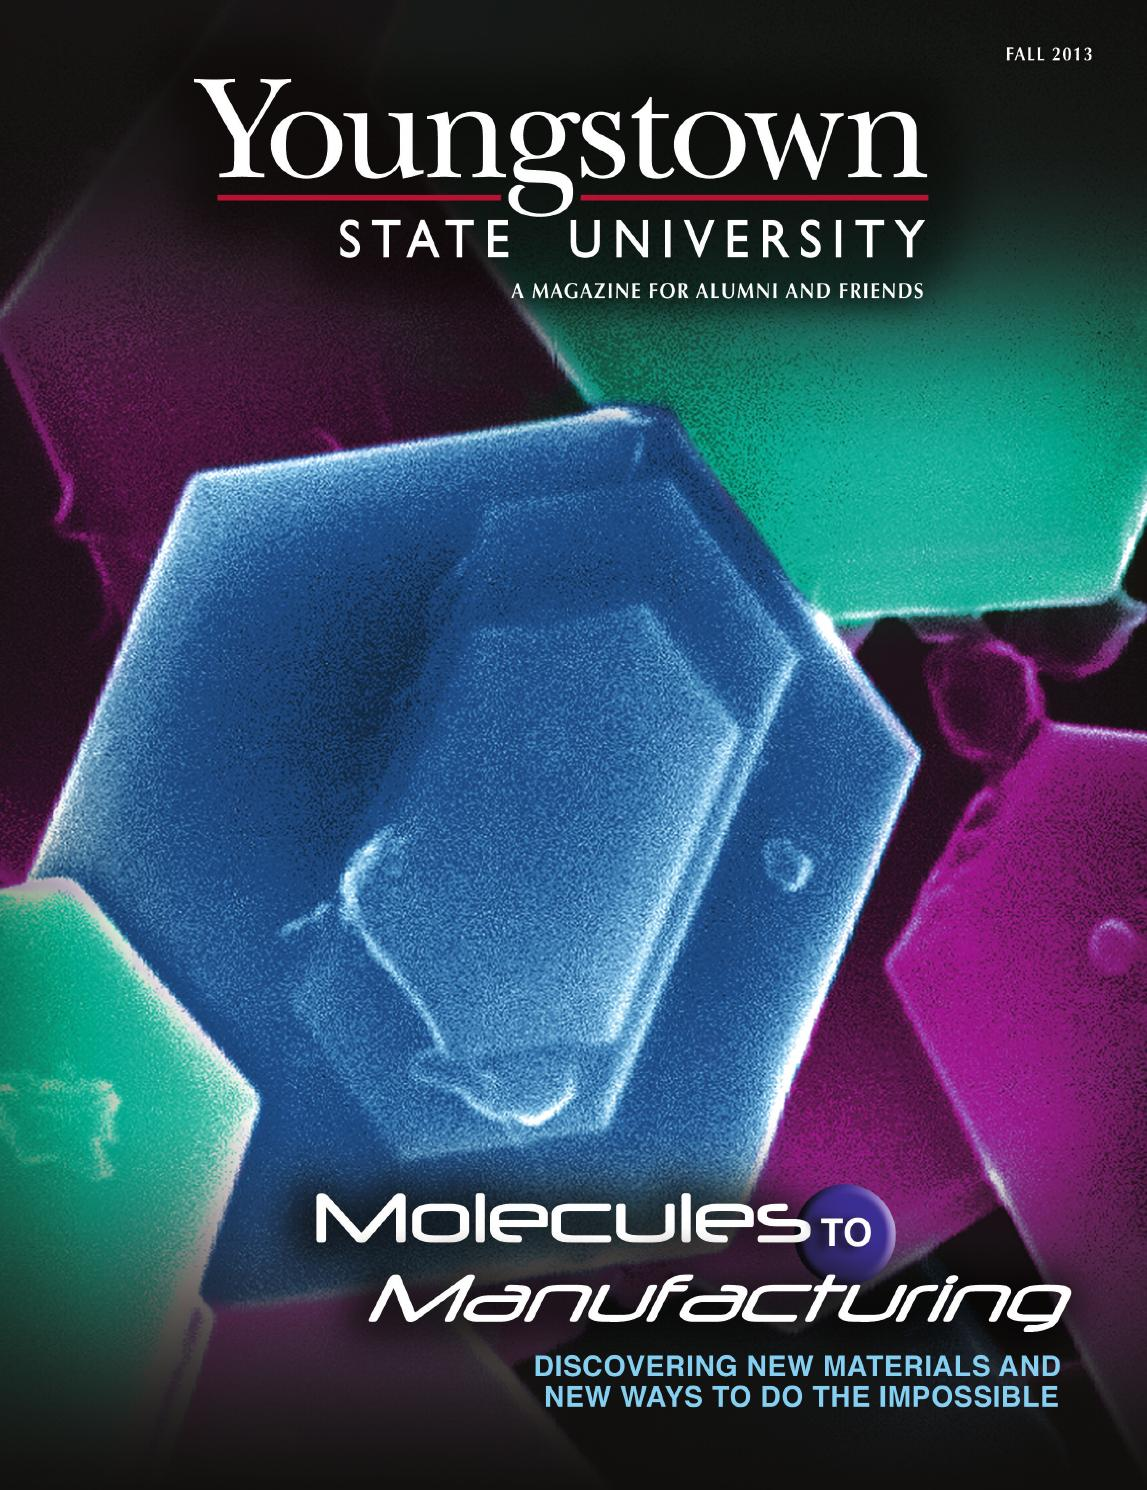 A Surprising Family Legacy Molecular >> Molecules To Manufacturing By Youngstown State University